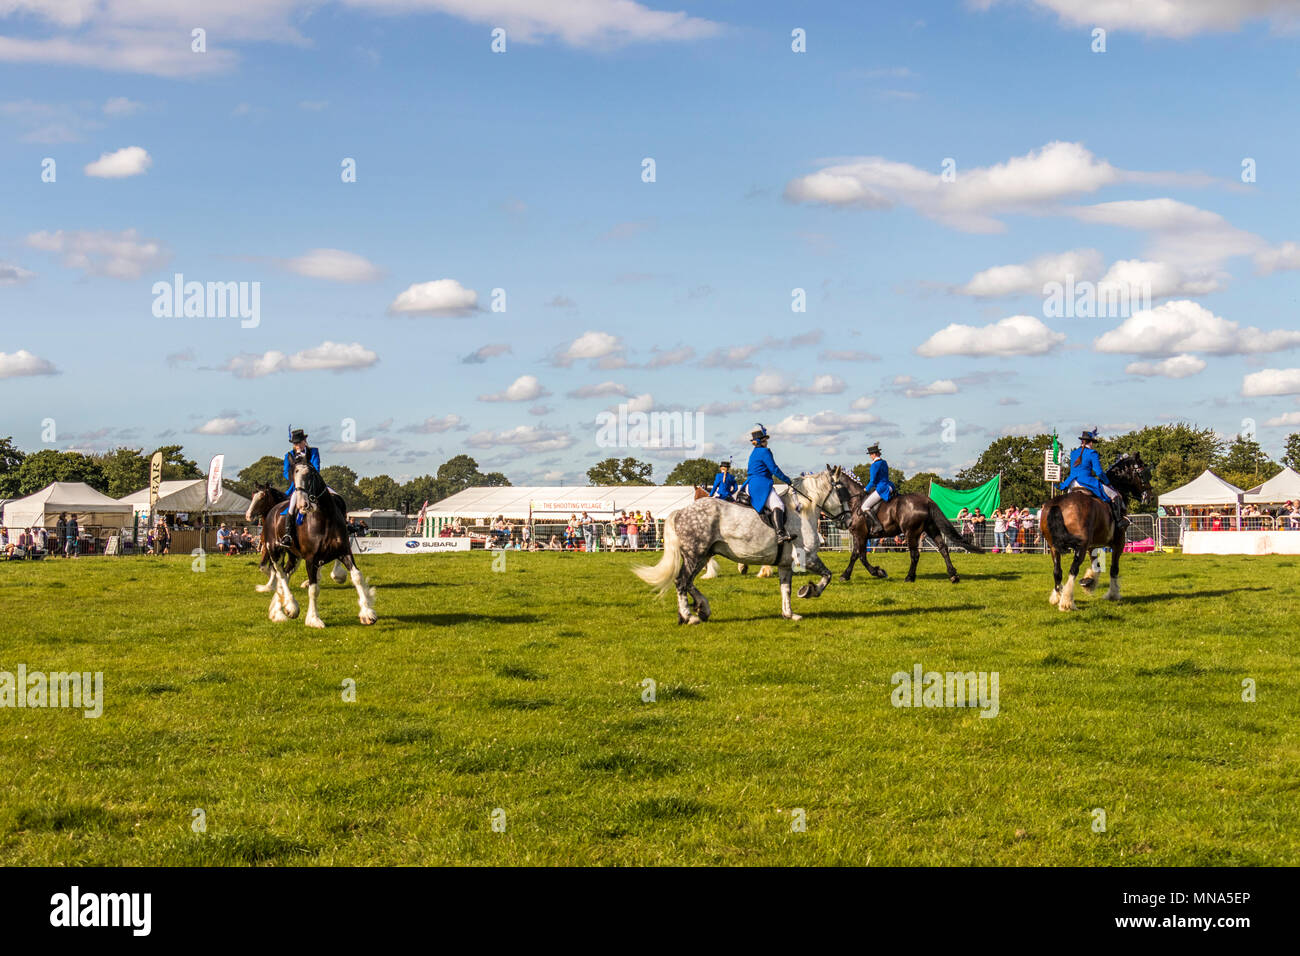 N and J musical Shire horses giving a display at Cheshire Game and Country fair at Tabley showground Cheshire UK. - Stock Image